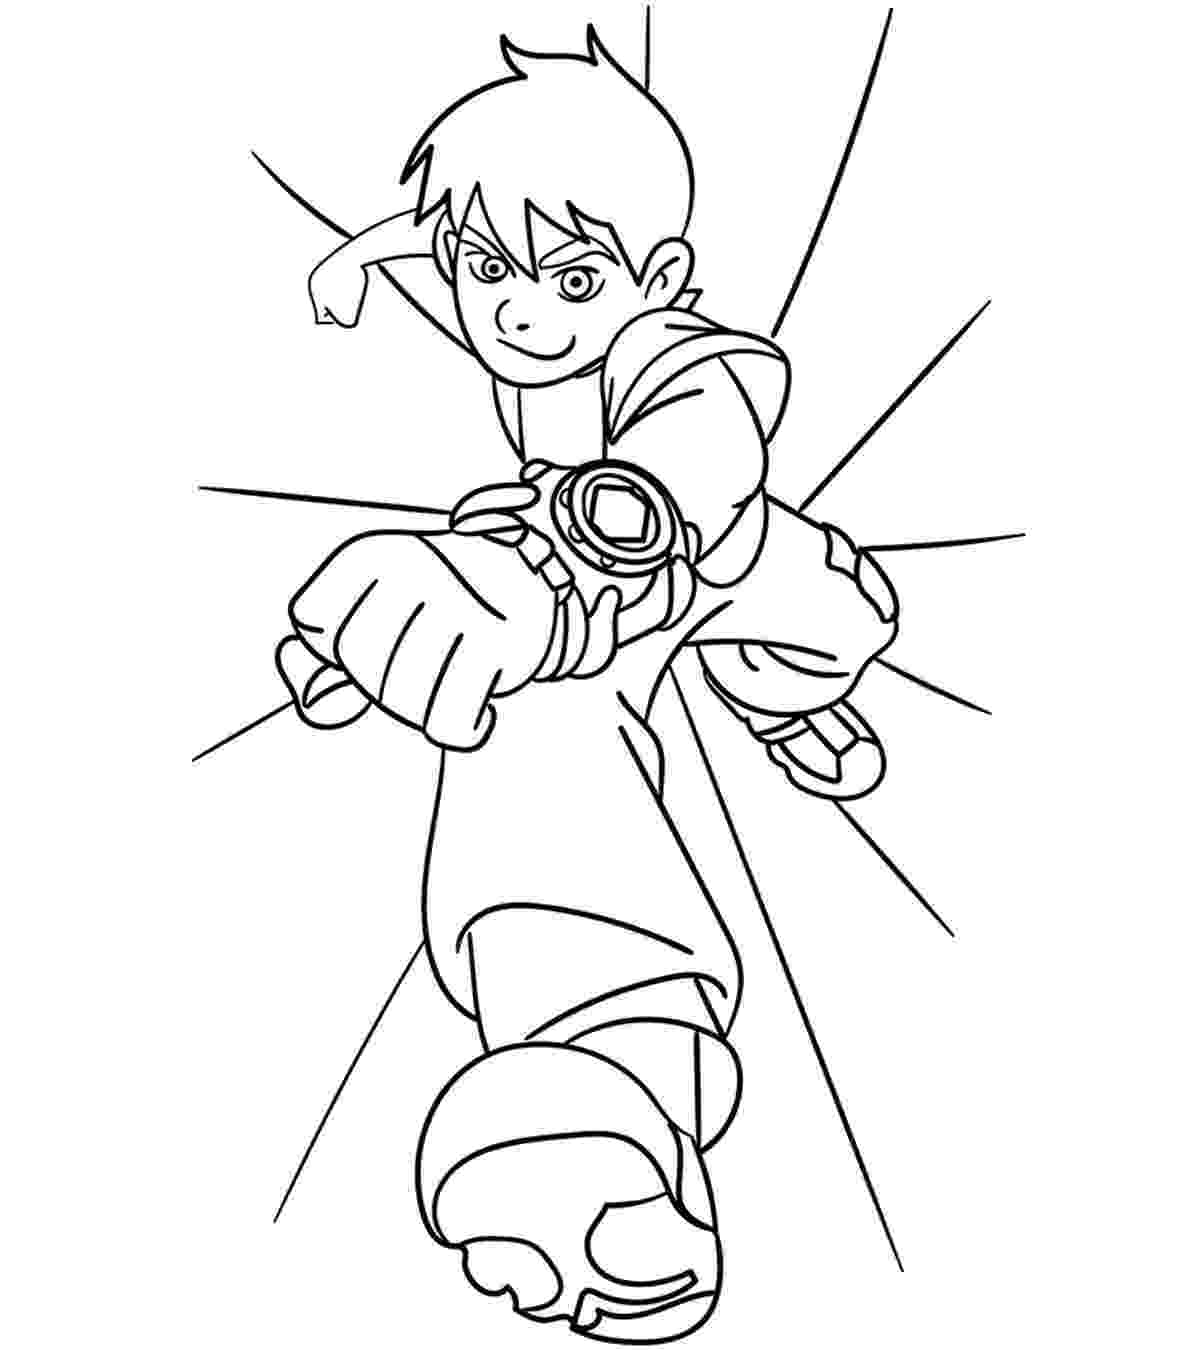 ben10 colouring printable ben ten coloring pages for kids cool2bkids ben10 colouring 1 1